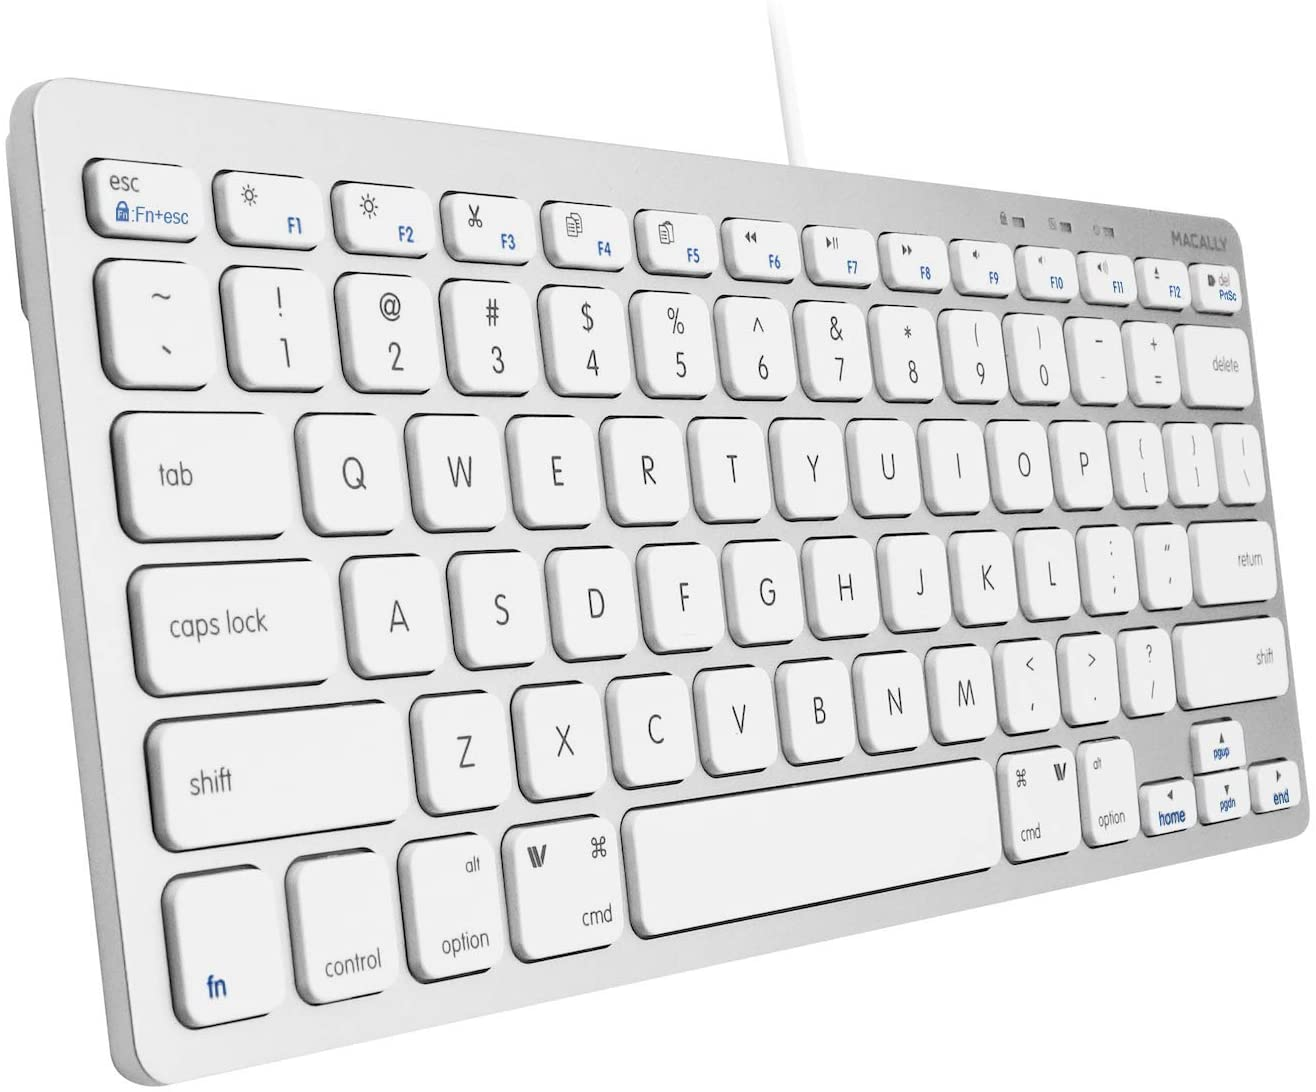 Macally USB Mini Keyboard for Mac and Windows PC - 78 Scissor Switch Keys with 13 Shortcut Keys - Compact & Small Keyboard That Saves Spaces and Looks Great - Plug and Play Mac Keyboard - Aluminum